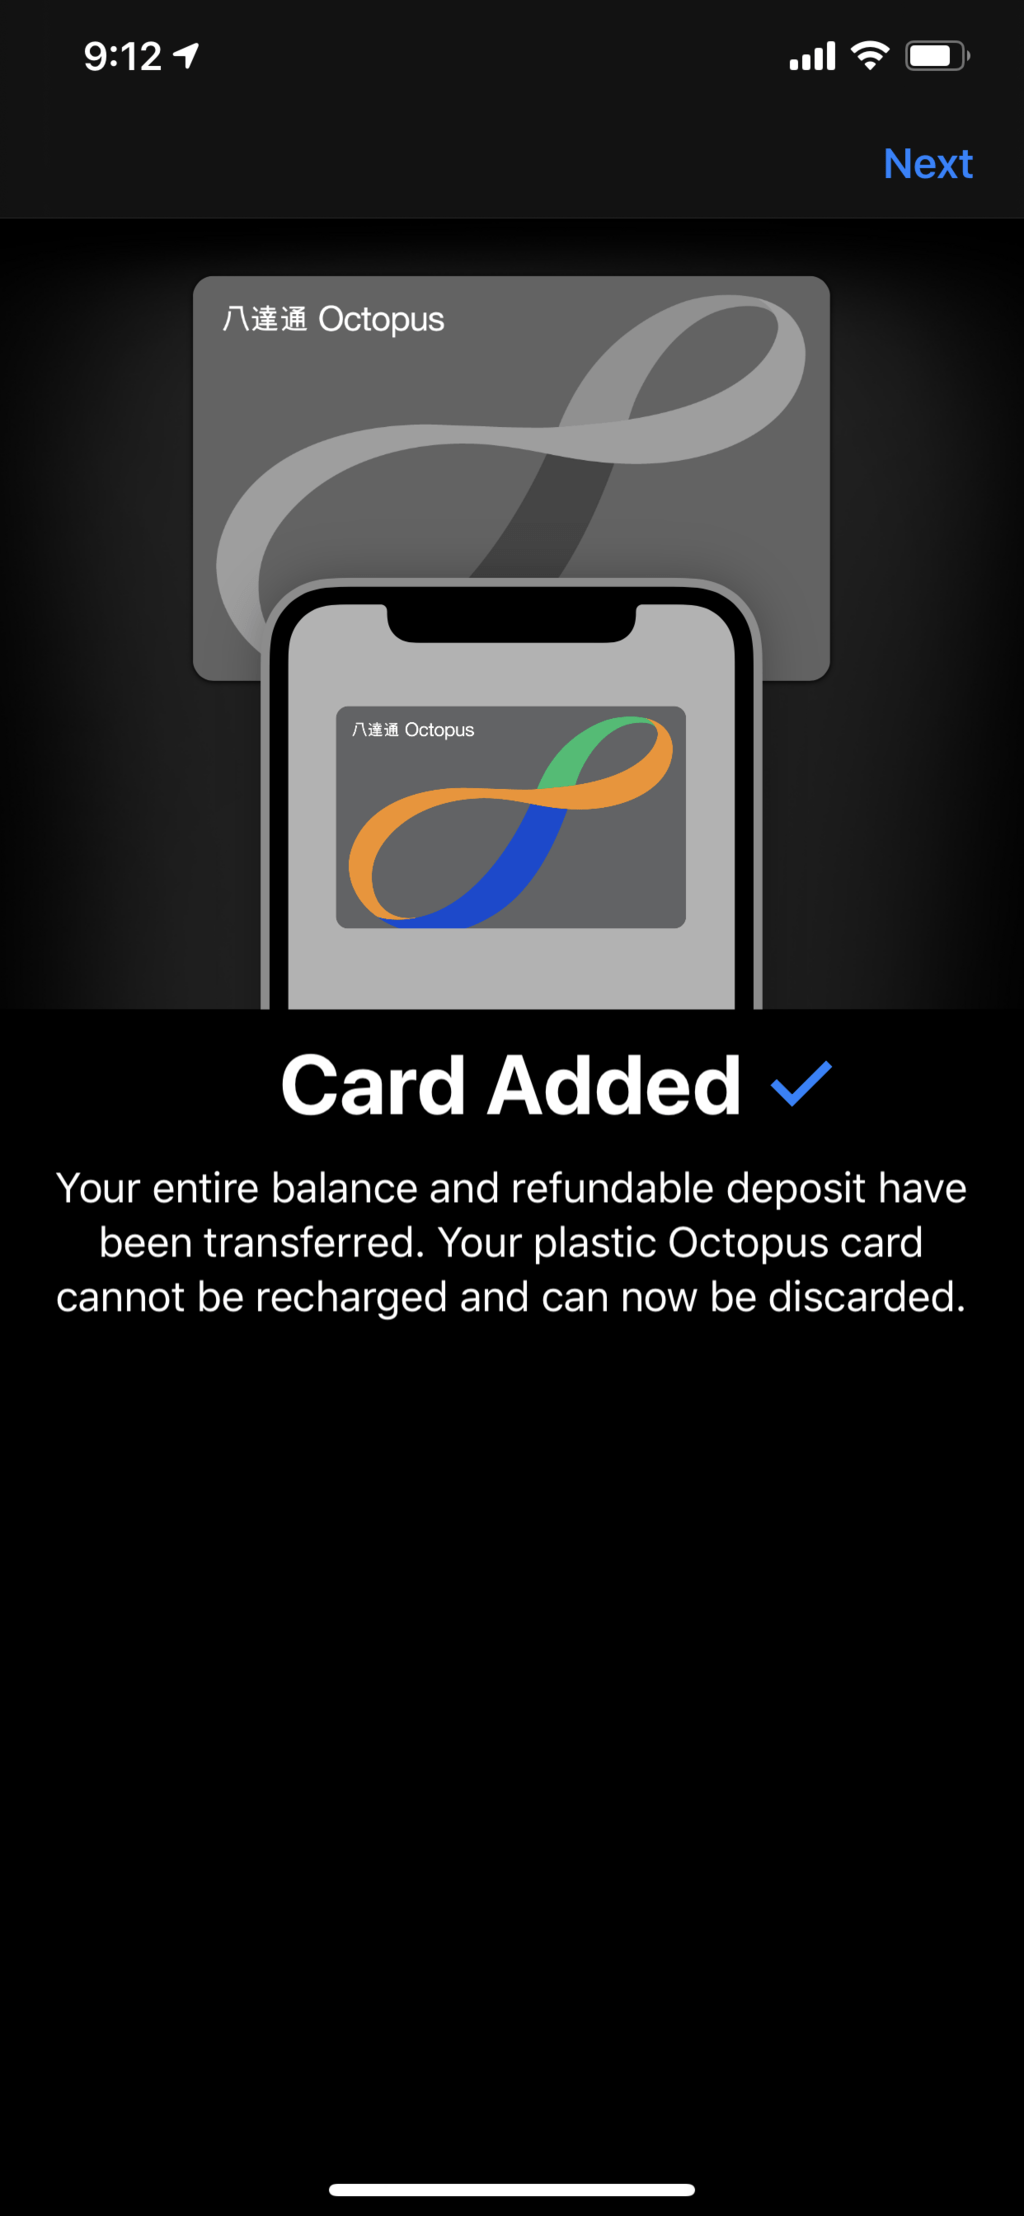 When your card is setup succesfully you will see this screen and the card will now be on your iPhone / Image courtesy of Brent Deverman